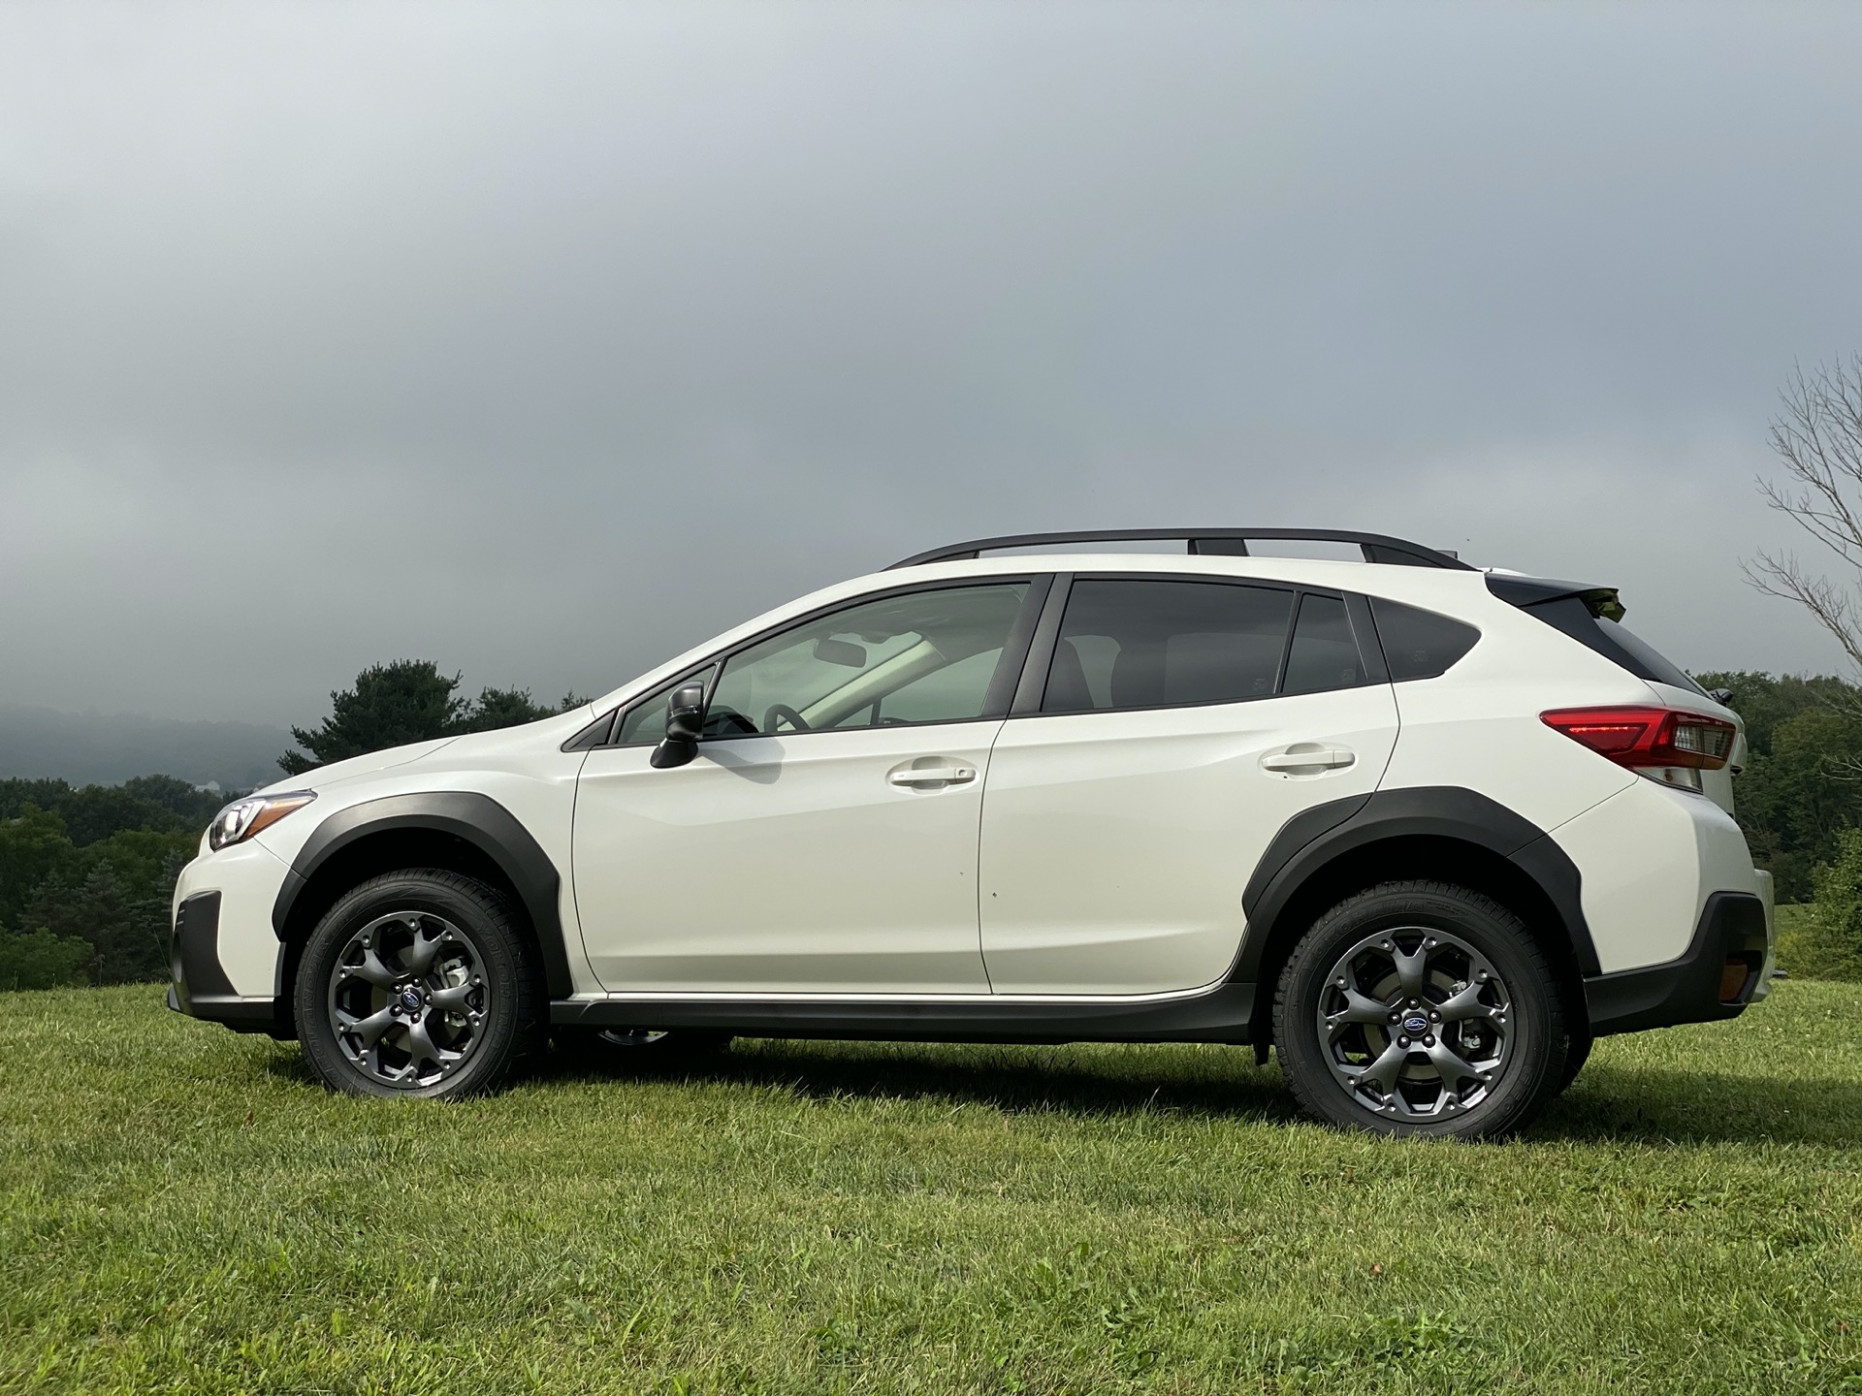 Redesign and Review Subaru Xv 2022 Review